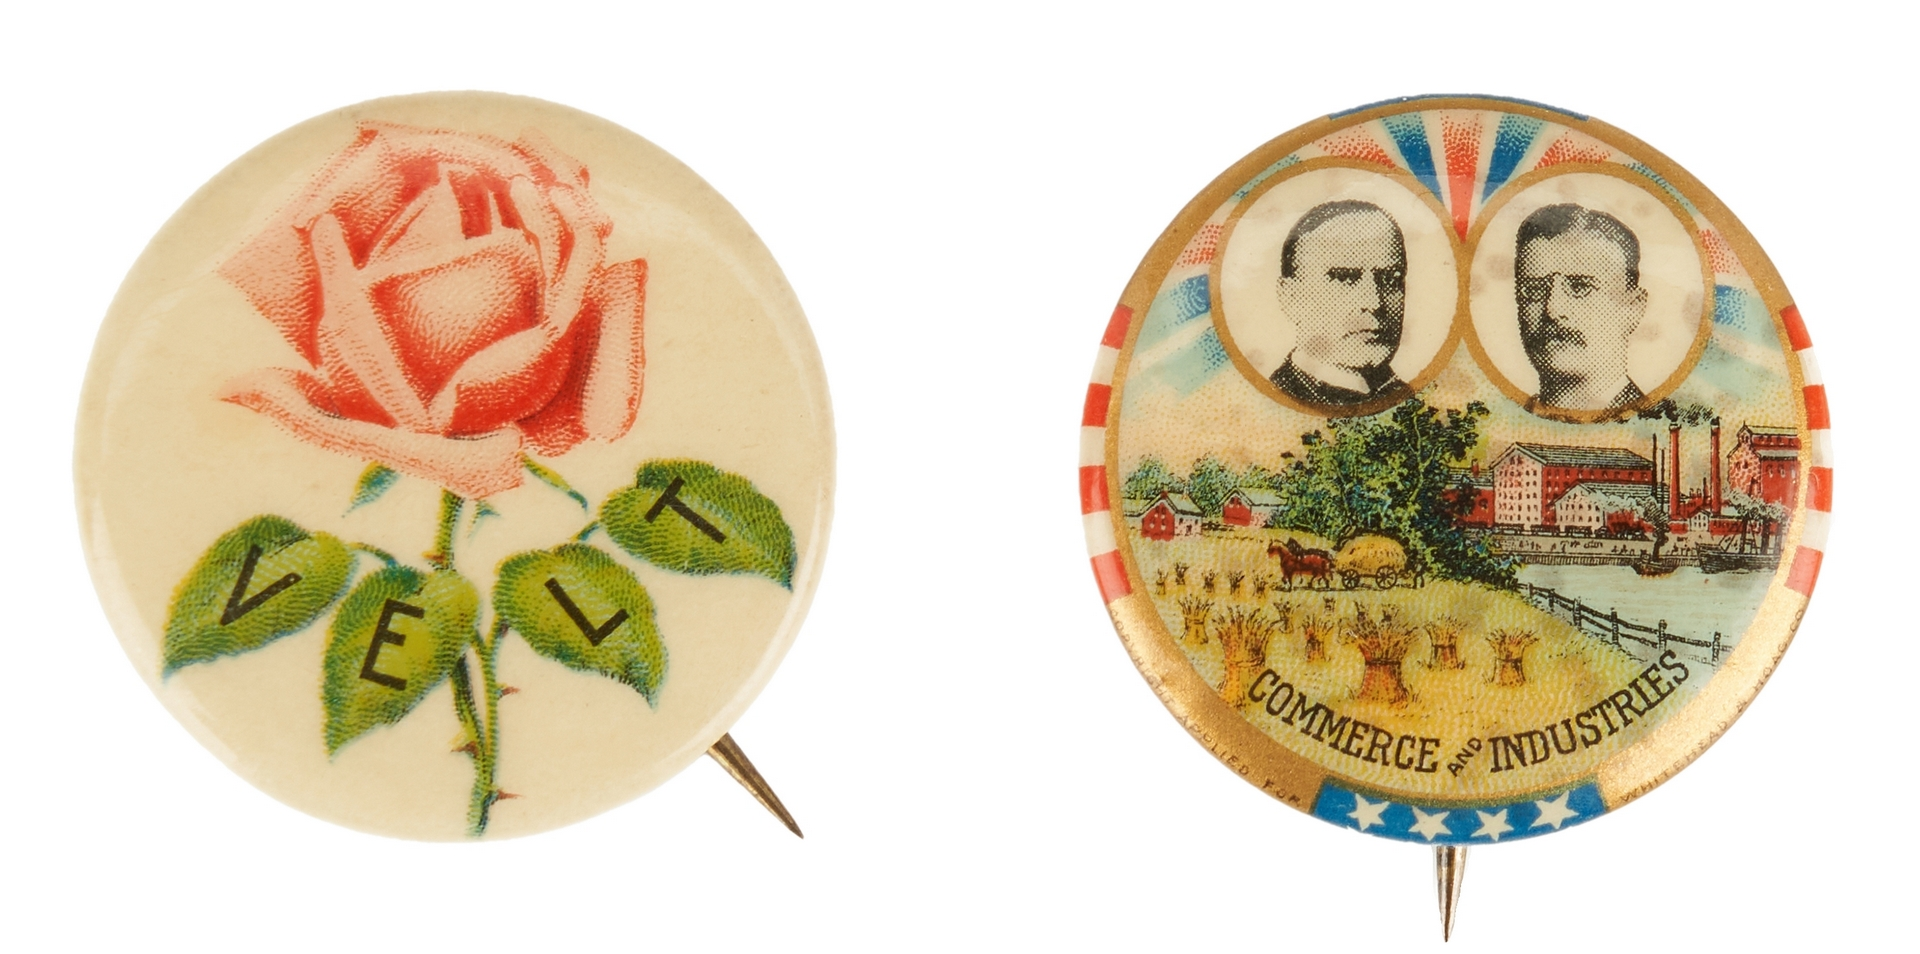 Lot 1008: 2 McKinley and Roosevelt Buttons, incl. Commerce and Industries